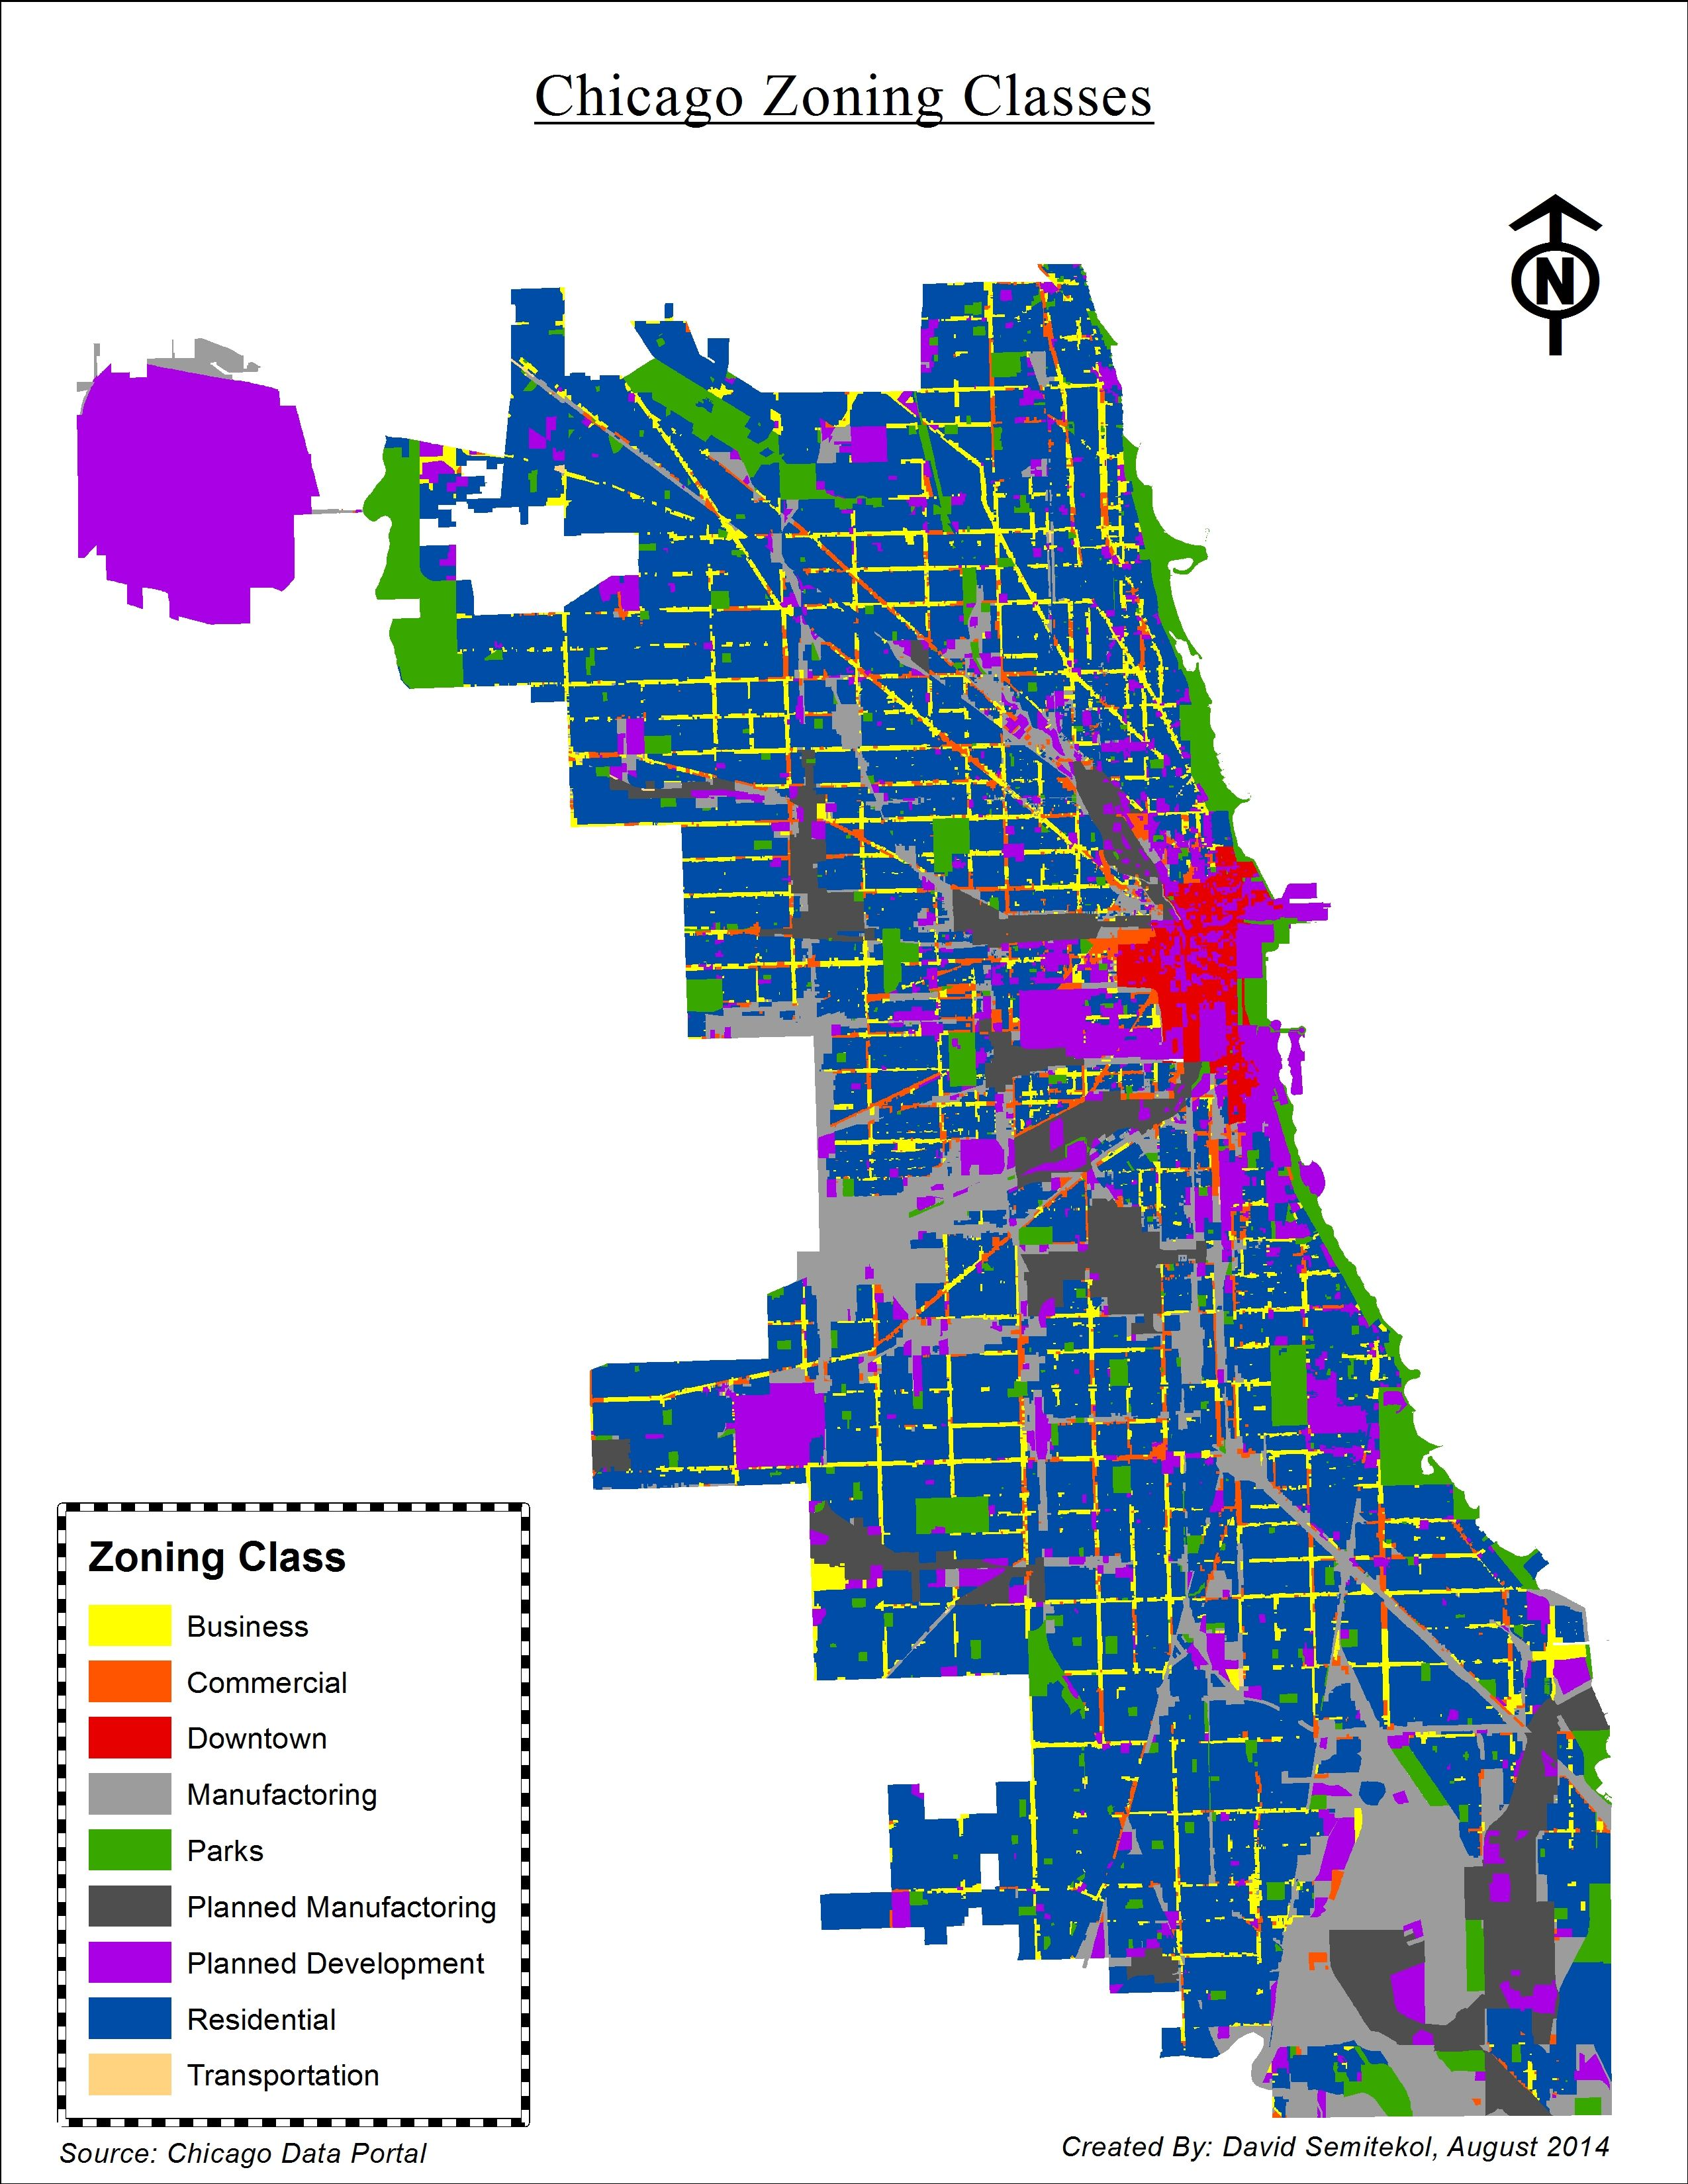 Displaying the Chicago Zoning general cles. | Maps | Map ... on chicago street index, chicago submarket map, chicago arcology map, chicago cemetery map, chicago temperature map, denver rtd light rail route map, chicago permit parking map, chicago zip code map printable, chicago and surrounding suburbs maps, chicago topography map, chicago residential parking permit, chicago watershed map, chicago construction map, chicago attraction map interactive click, chicago zones, chicago annexation map, chicago budget, a long way from chicago map, chicago metra system map, chicago municipal code,